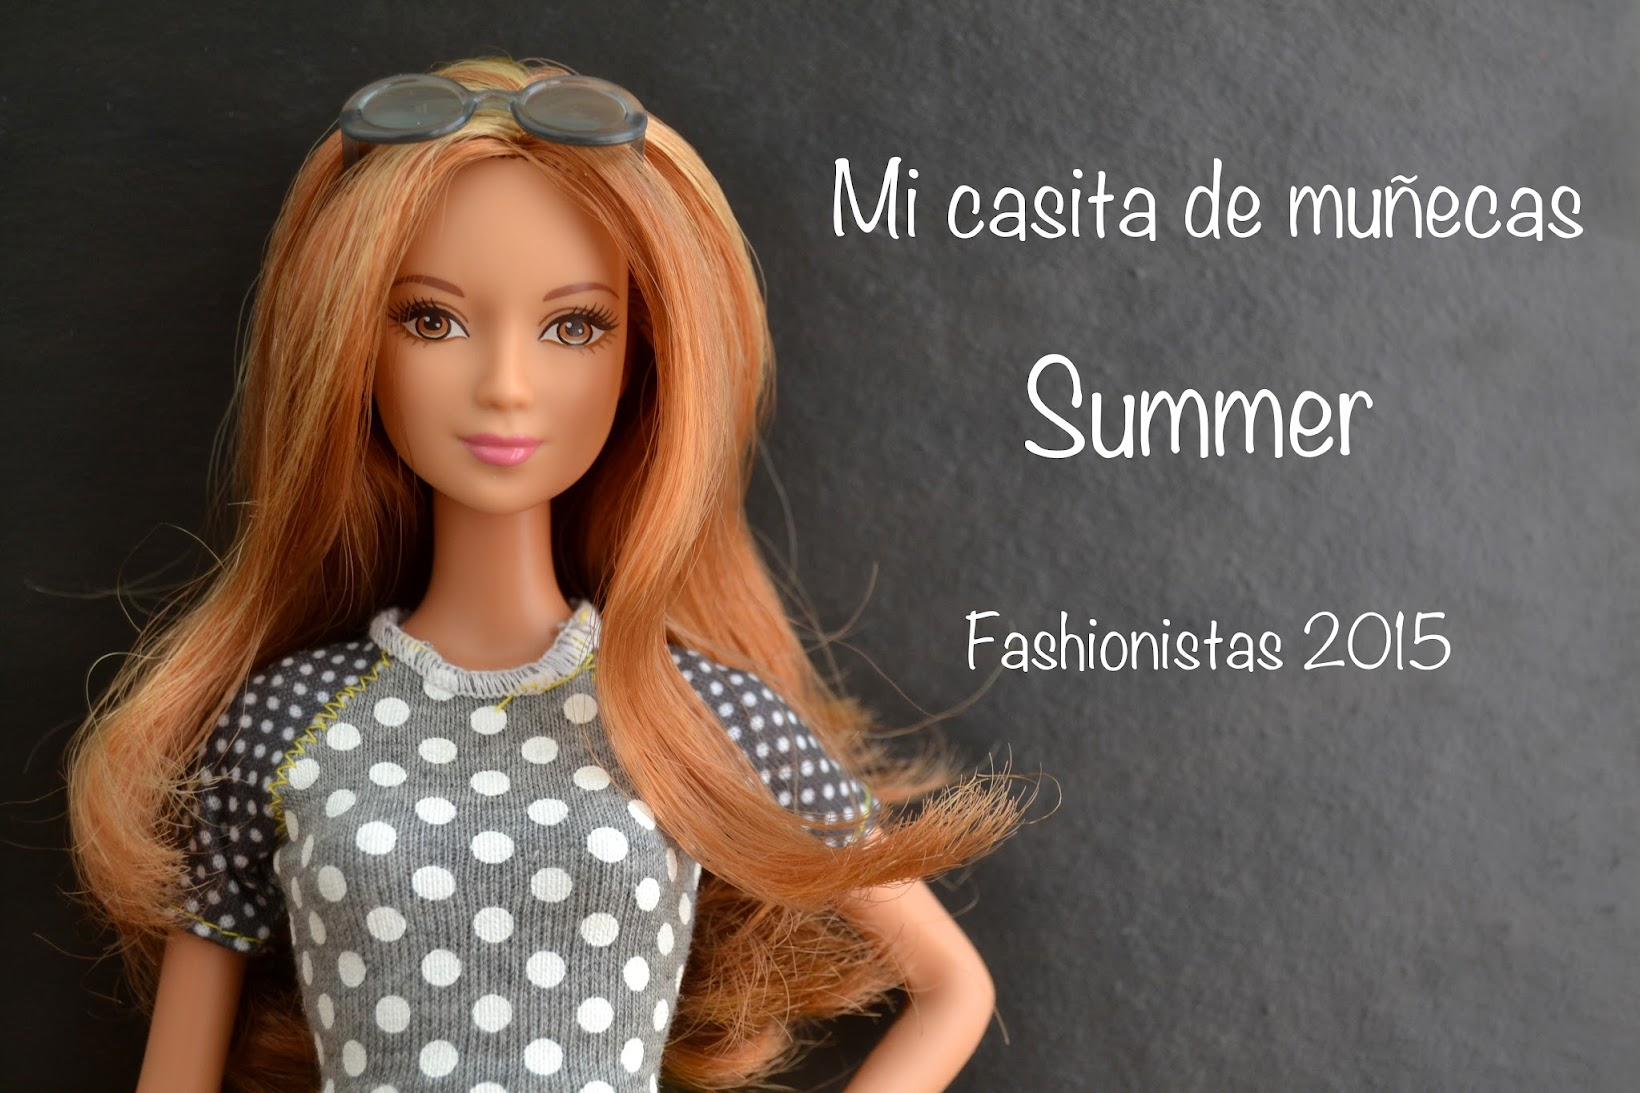 Barbie Fashionistas 2015. Summer, Kayla, Lea, Barbie.